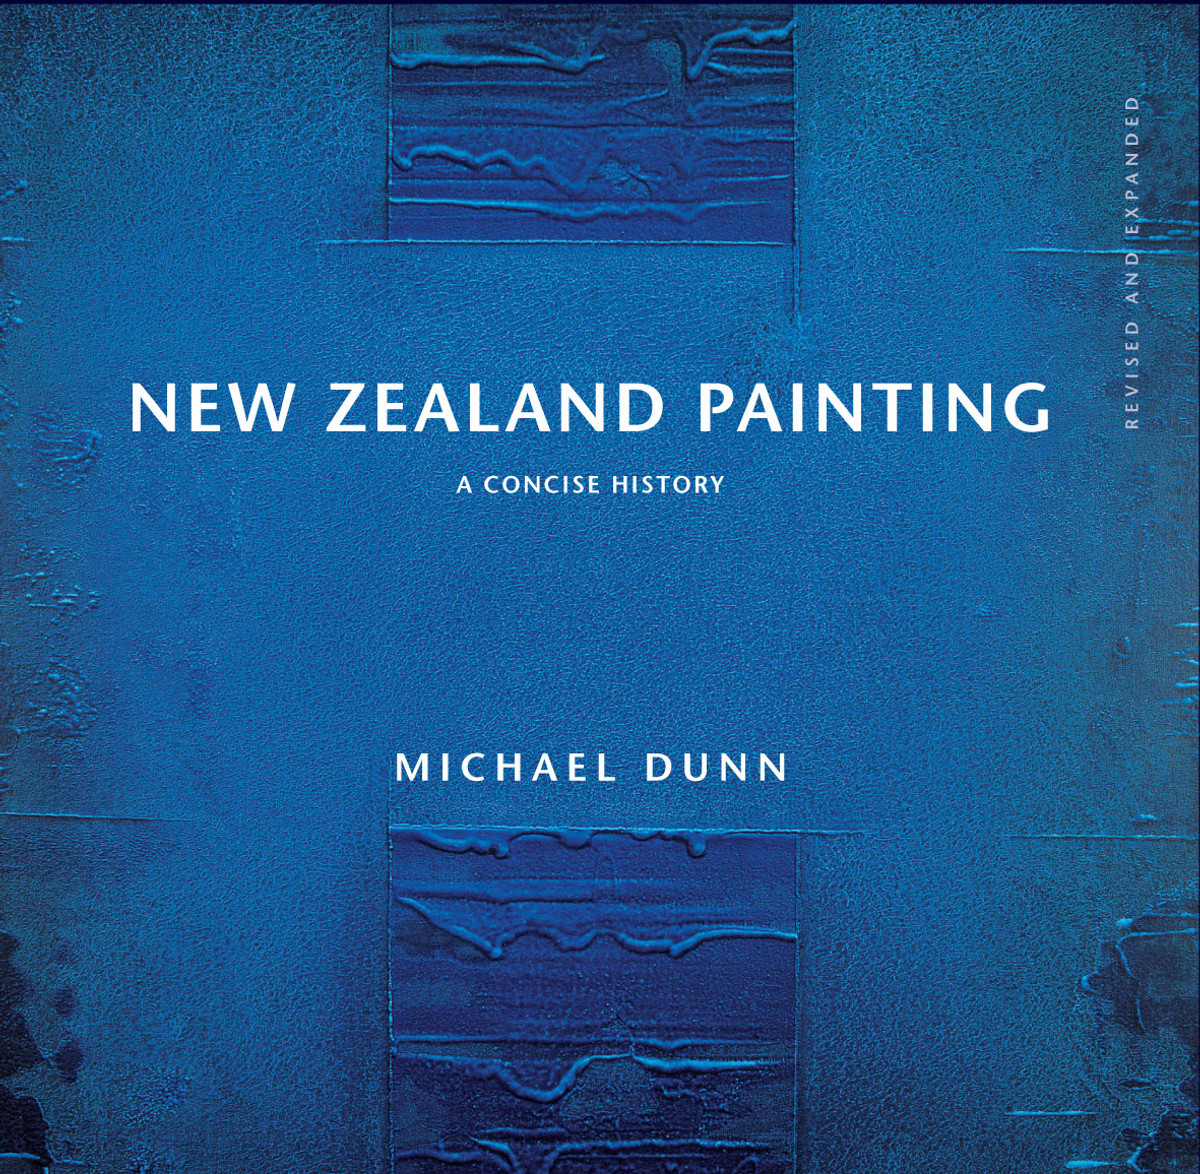 New Zealand Painting: A Concise History by Michael Dunn